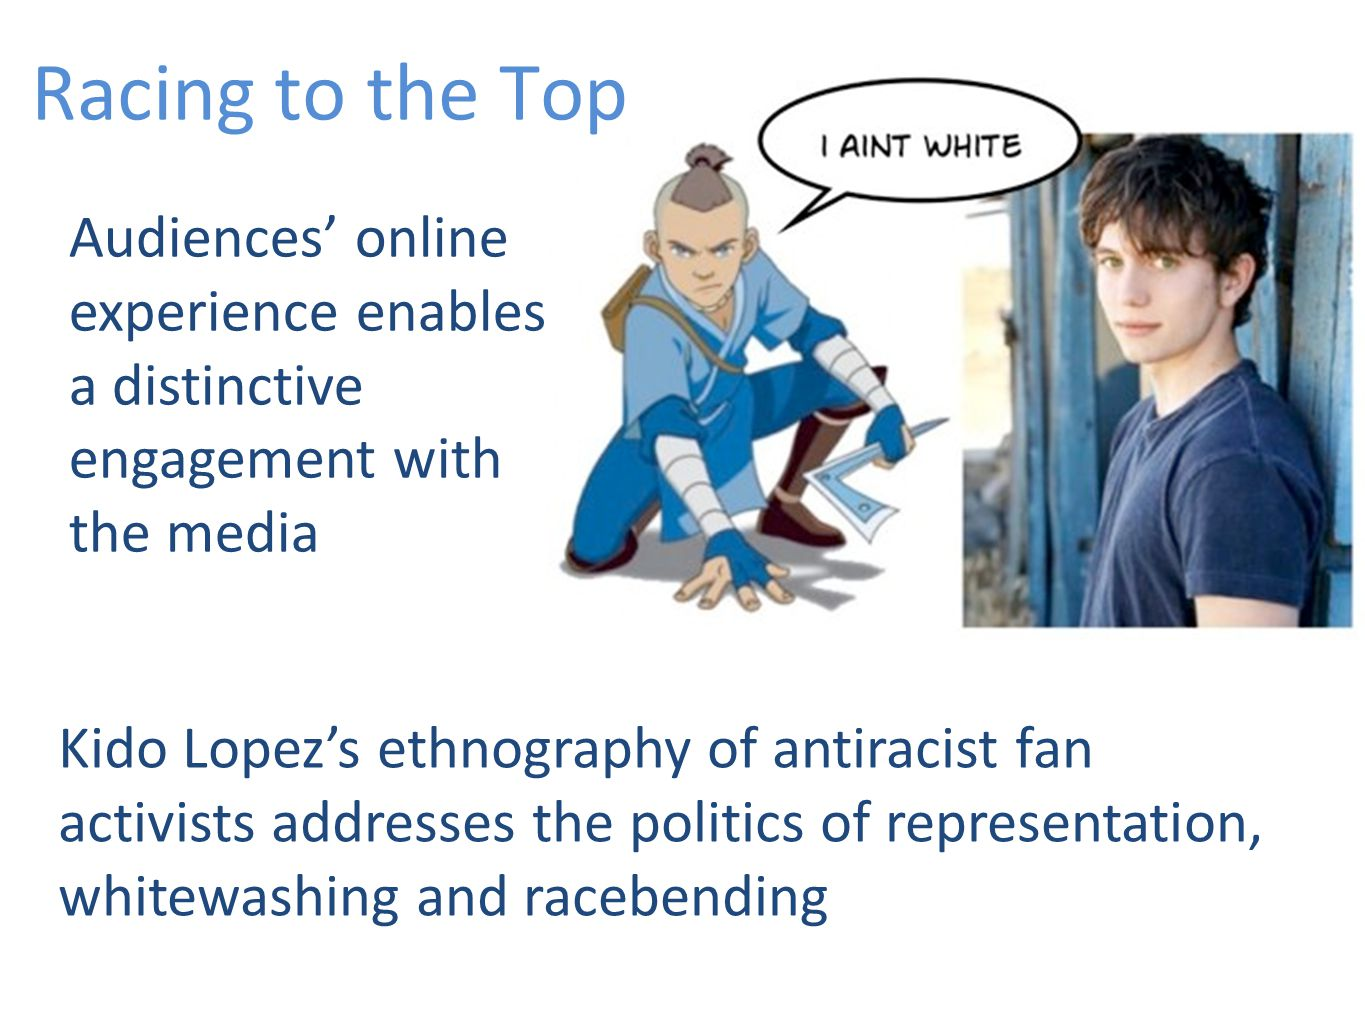 Racing to the Top Audiences' online experience enables a distinctive engagement with the media Kido Lopez's ethnography of antiracist fan activists addresses the politics of representation, whitewashing and racebending